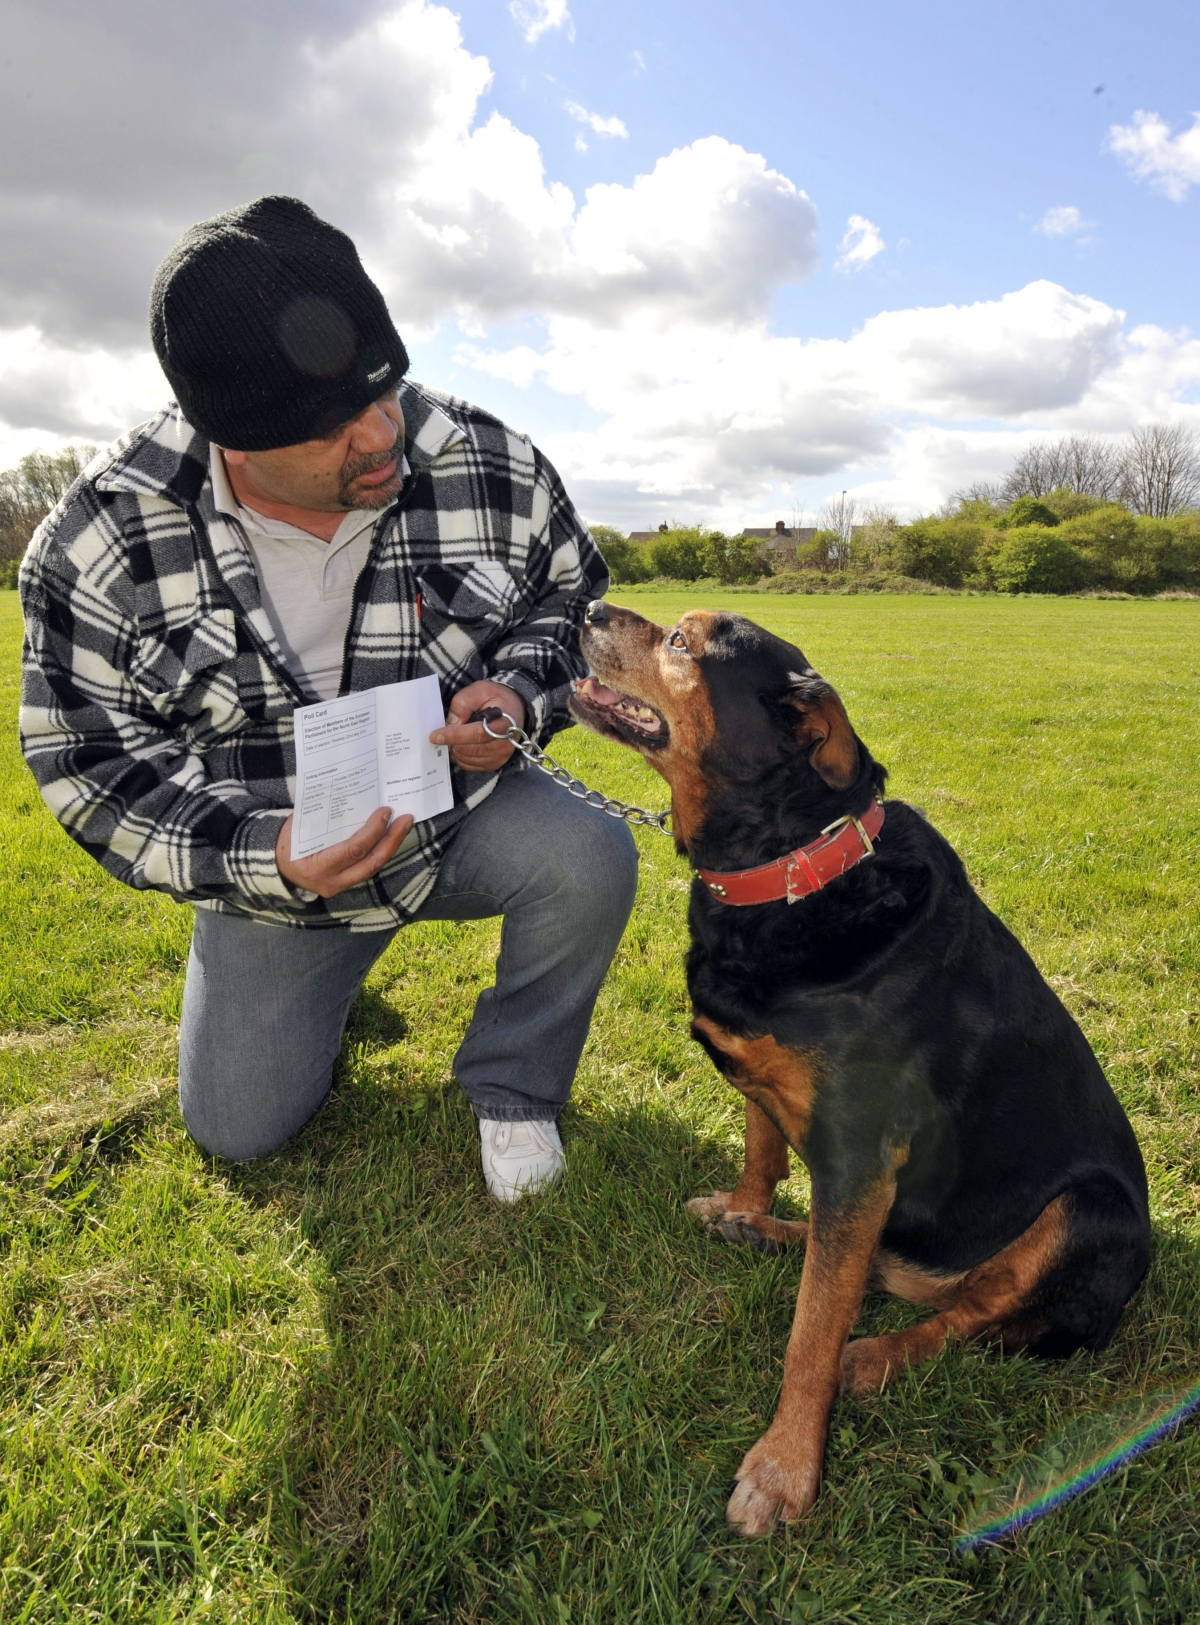 Zeus, a Rottweiller cross who has been sent a polling car